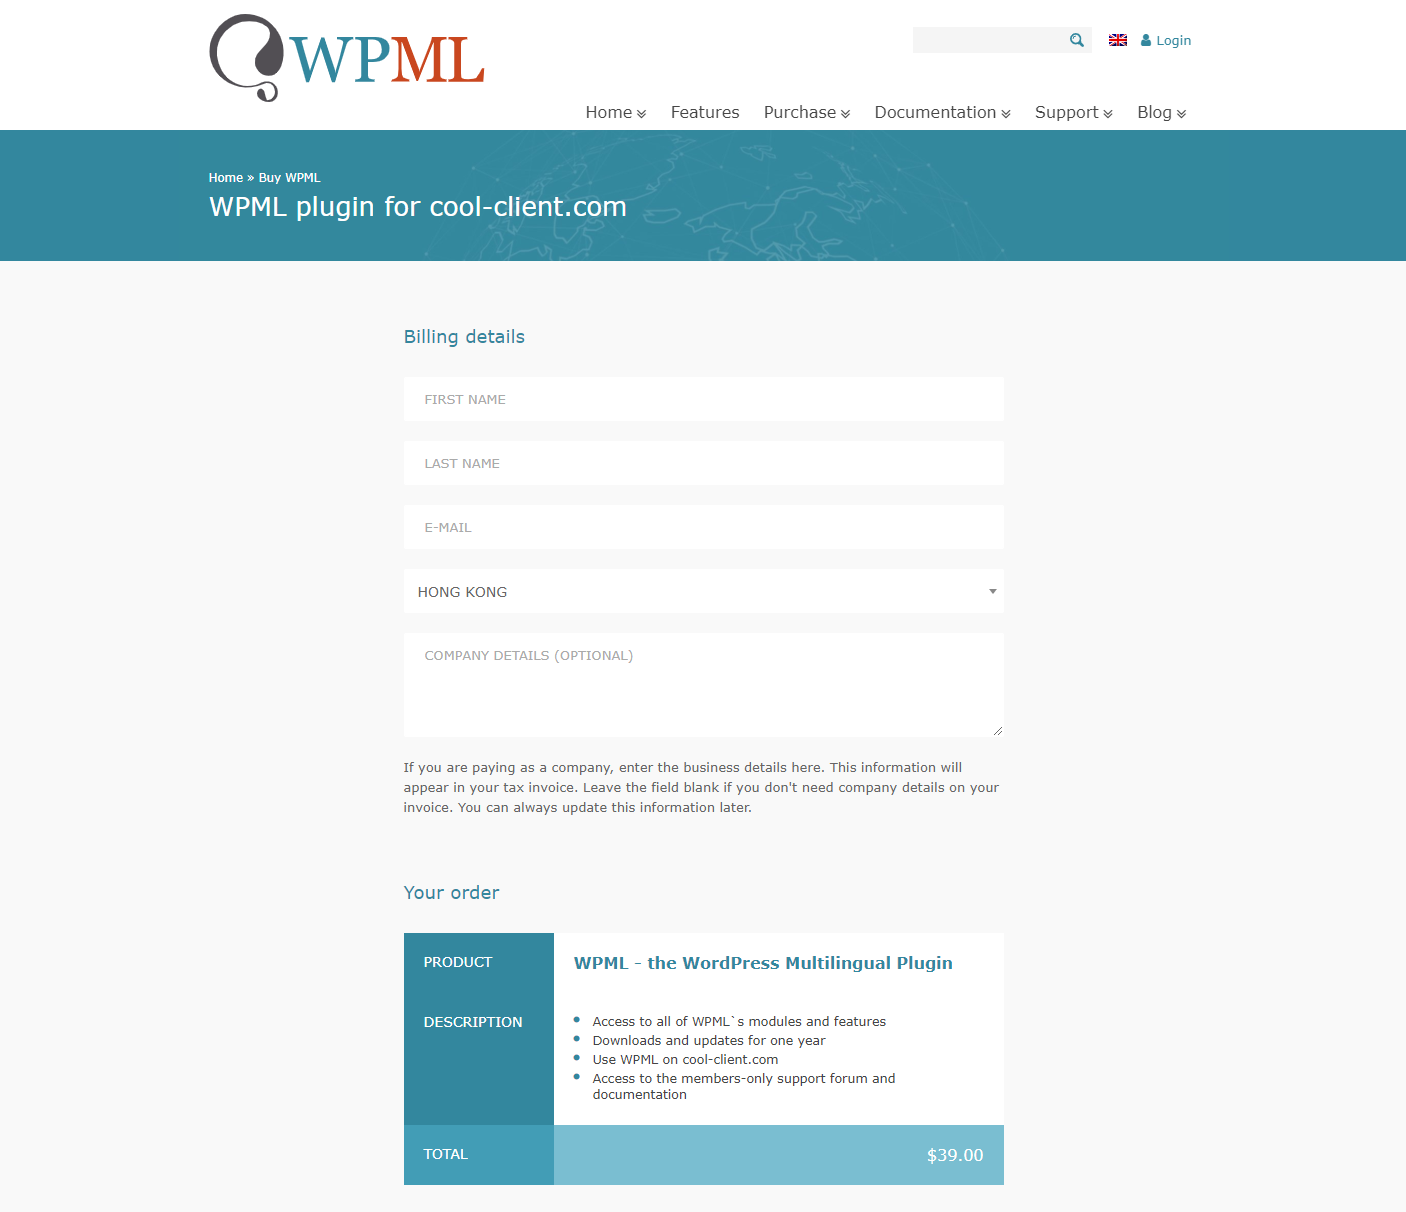 The WPML checkout page